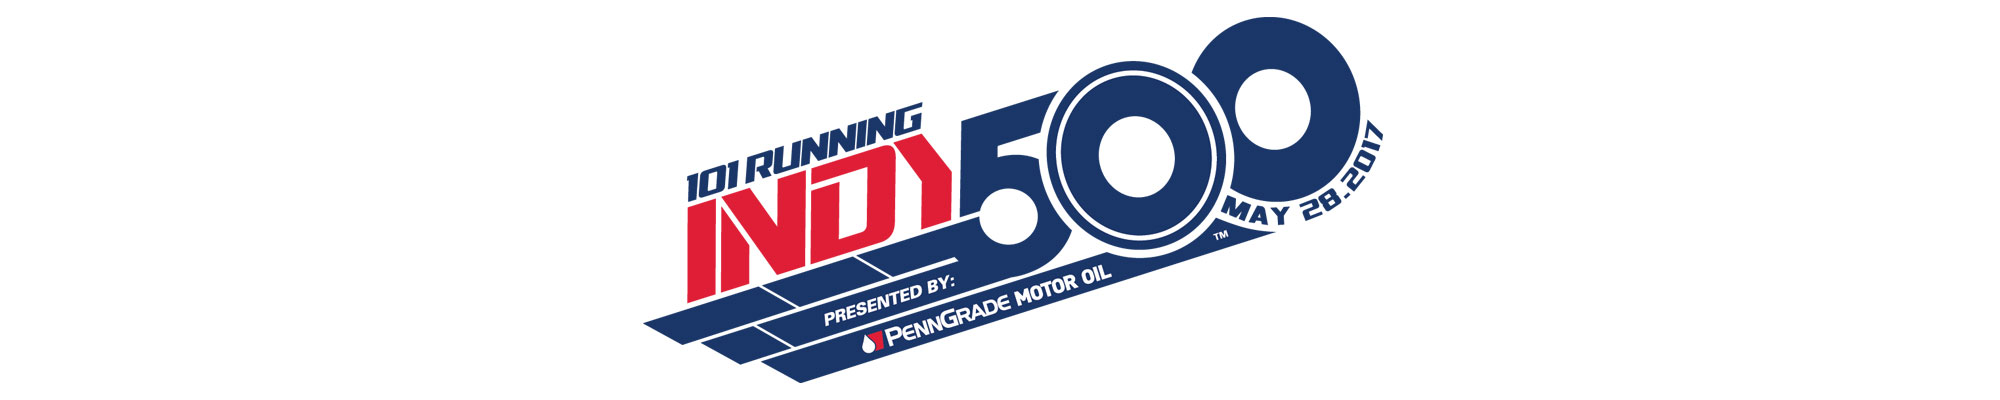 header-101runningindy500.jpg